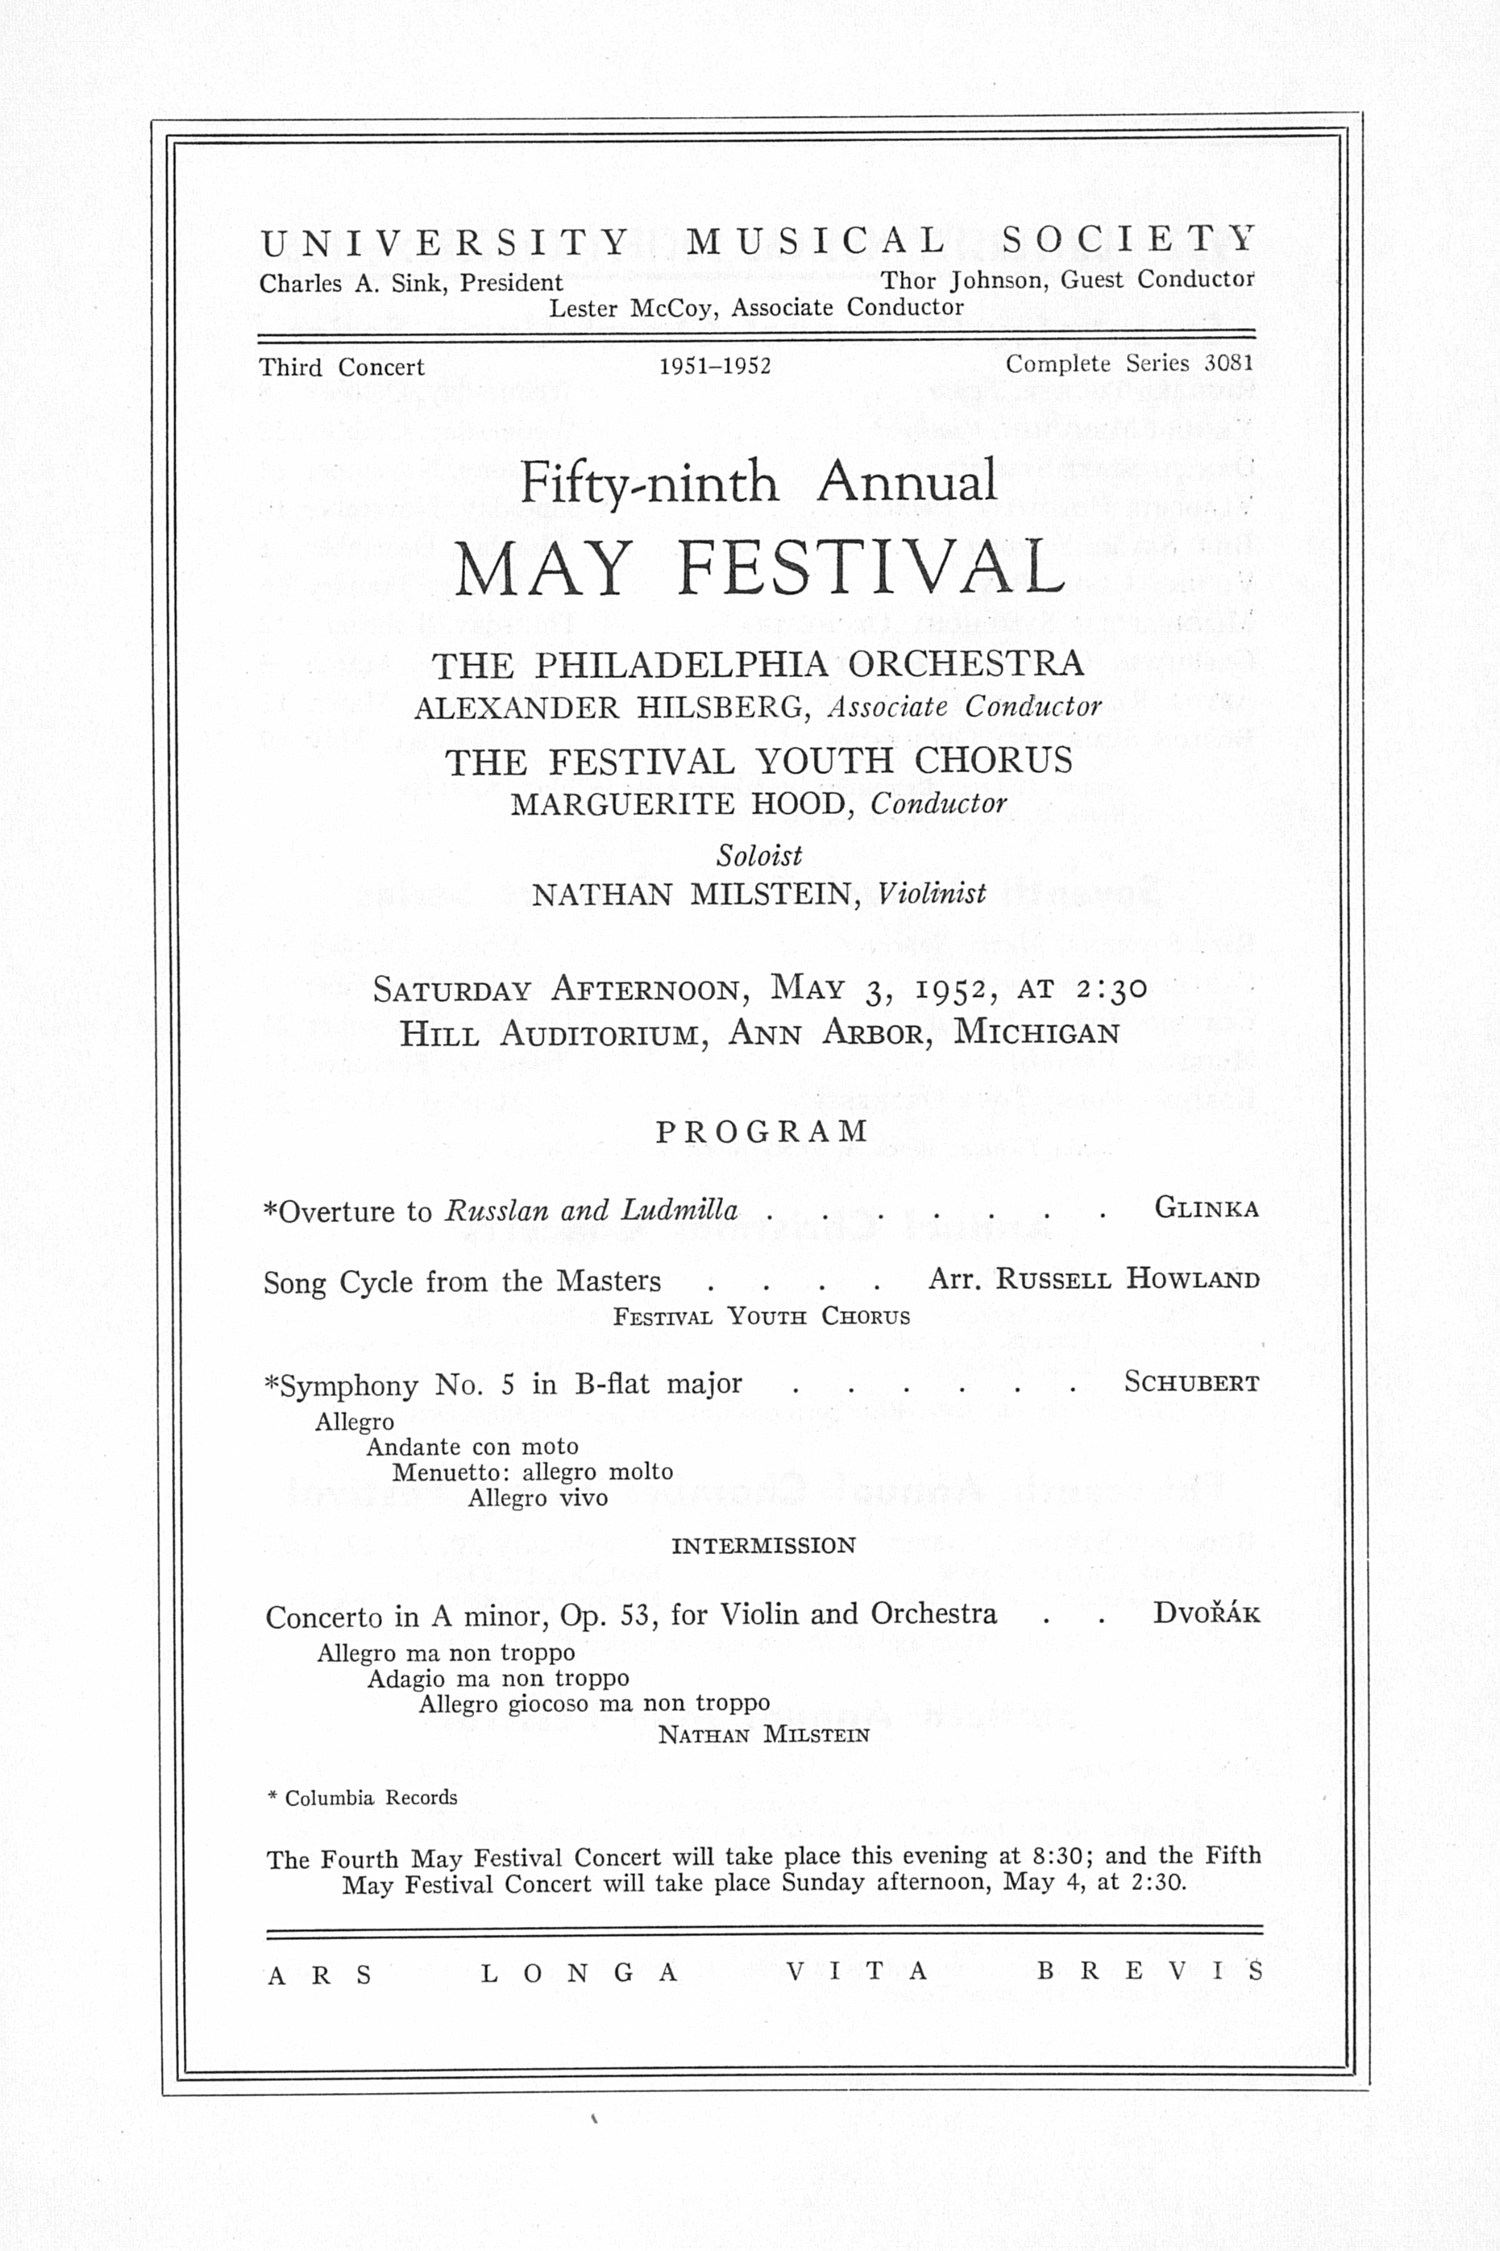 UMS Concert Program, May 3, 1952: Fifty-ninth Annual May Festival -- The Philadelphia Orchestra image